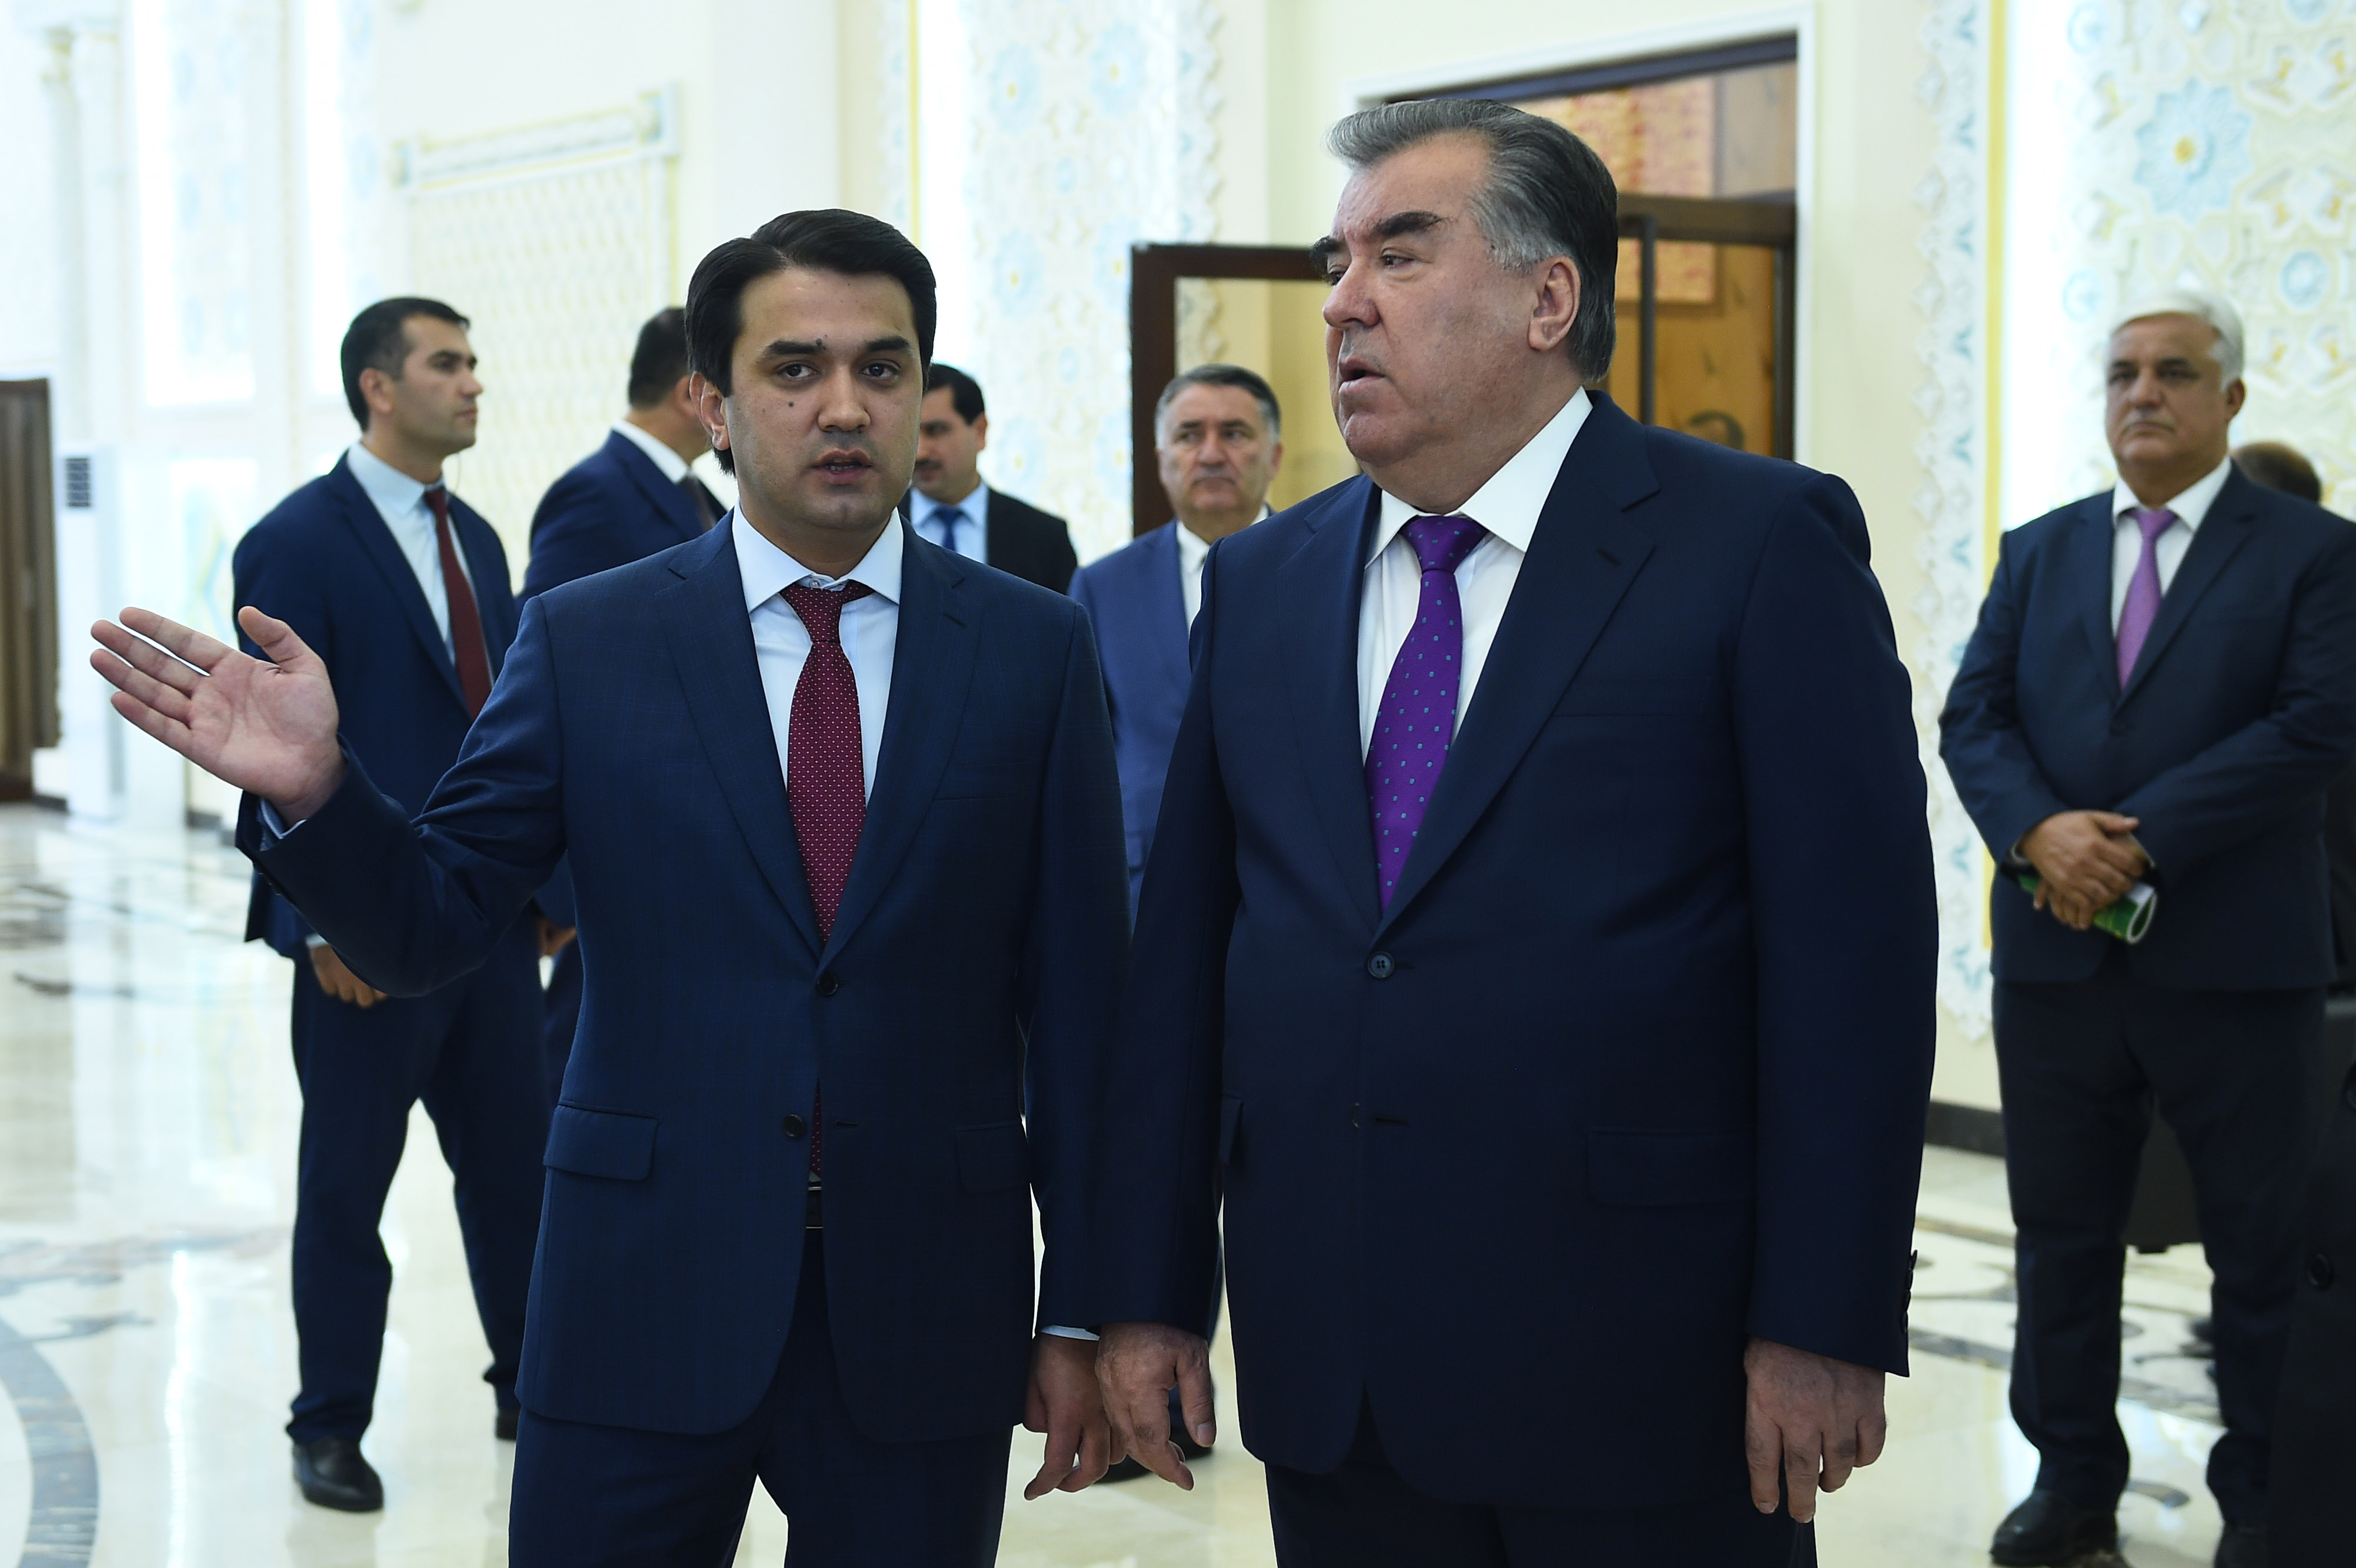 Rustam Emomali, left, together his father, President Emomali Rahmon, at an official event earlier this month. (Photo: Presidential administration Flickr account)